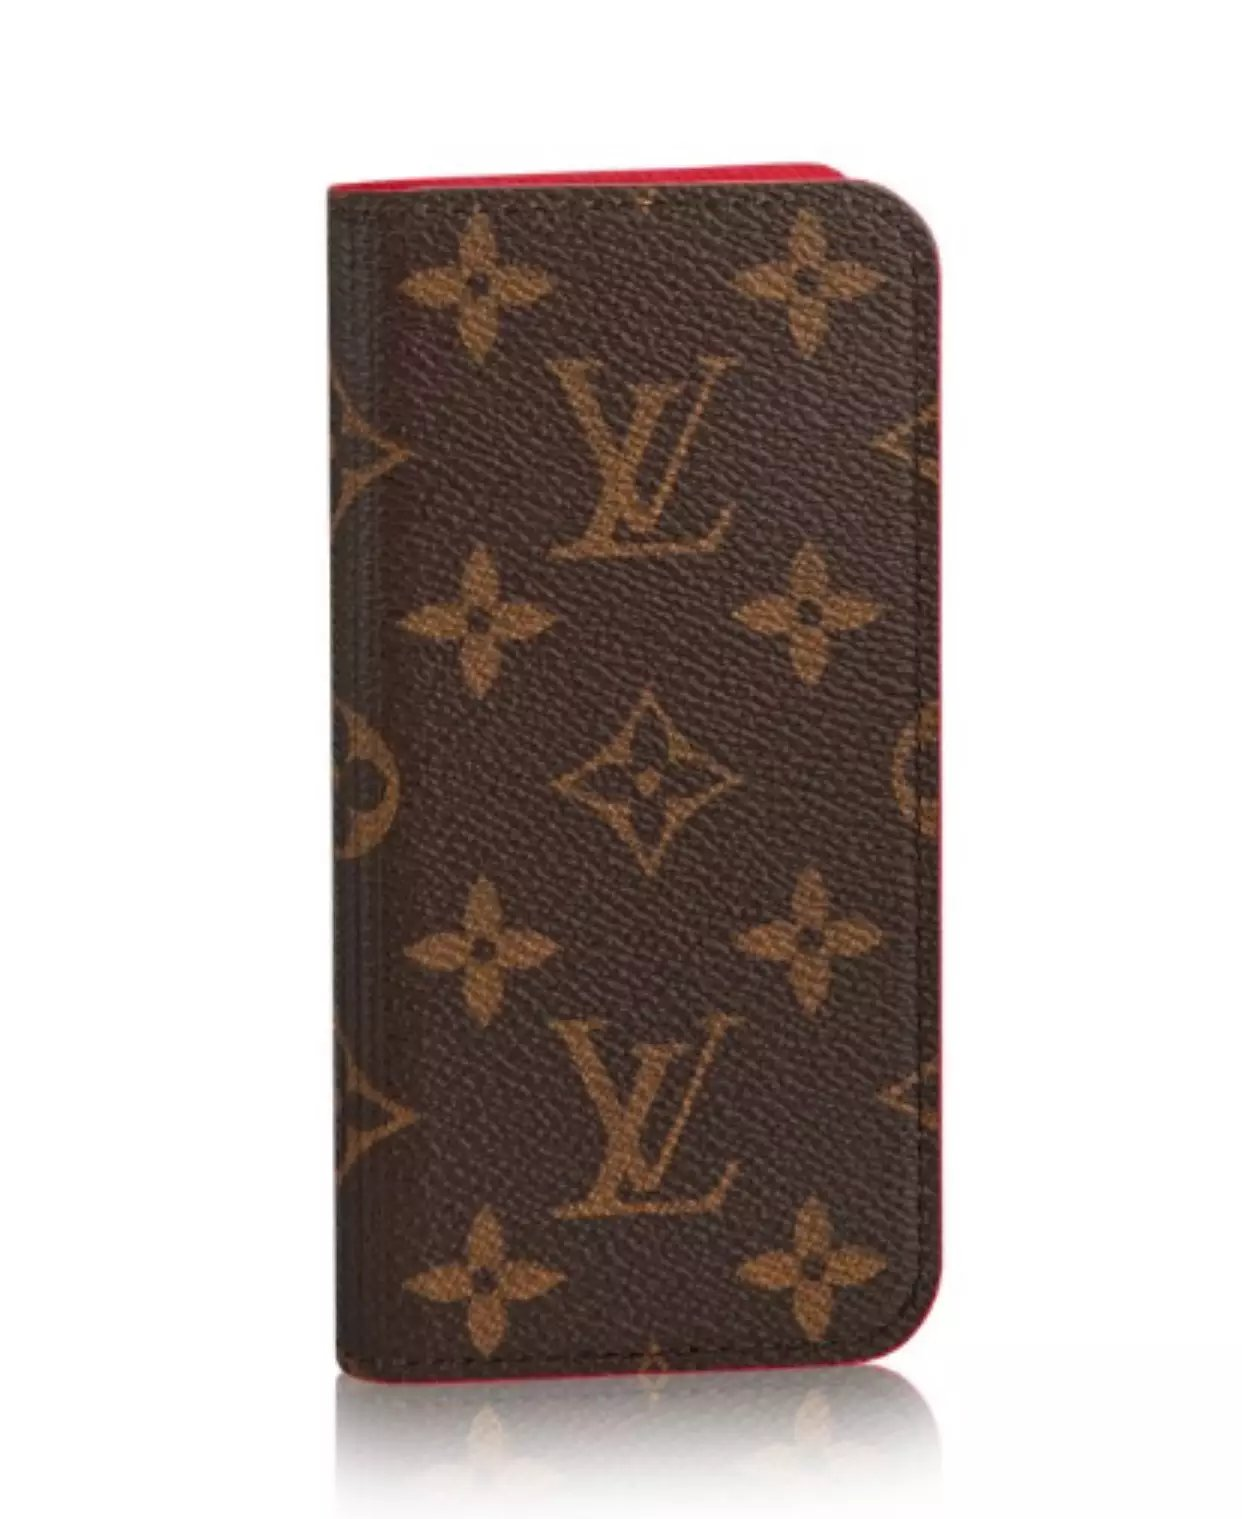 design an iphone 8 Plus case design a iphone 8 Plus case Louis Vuitton iphone 8 Plus case mophie juice pack 6 covers cell phone covers iPhone 8 Plus fashion iPhone 8 Plus cases 6 phone covers cases for